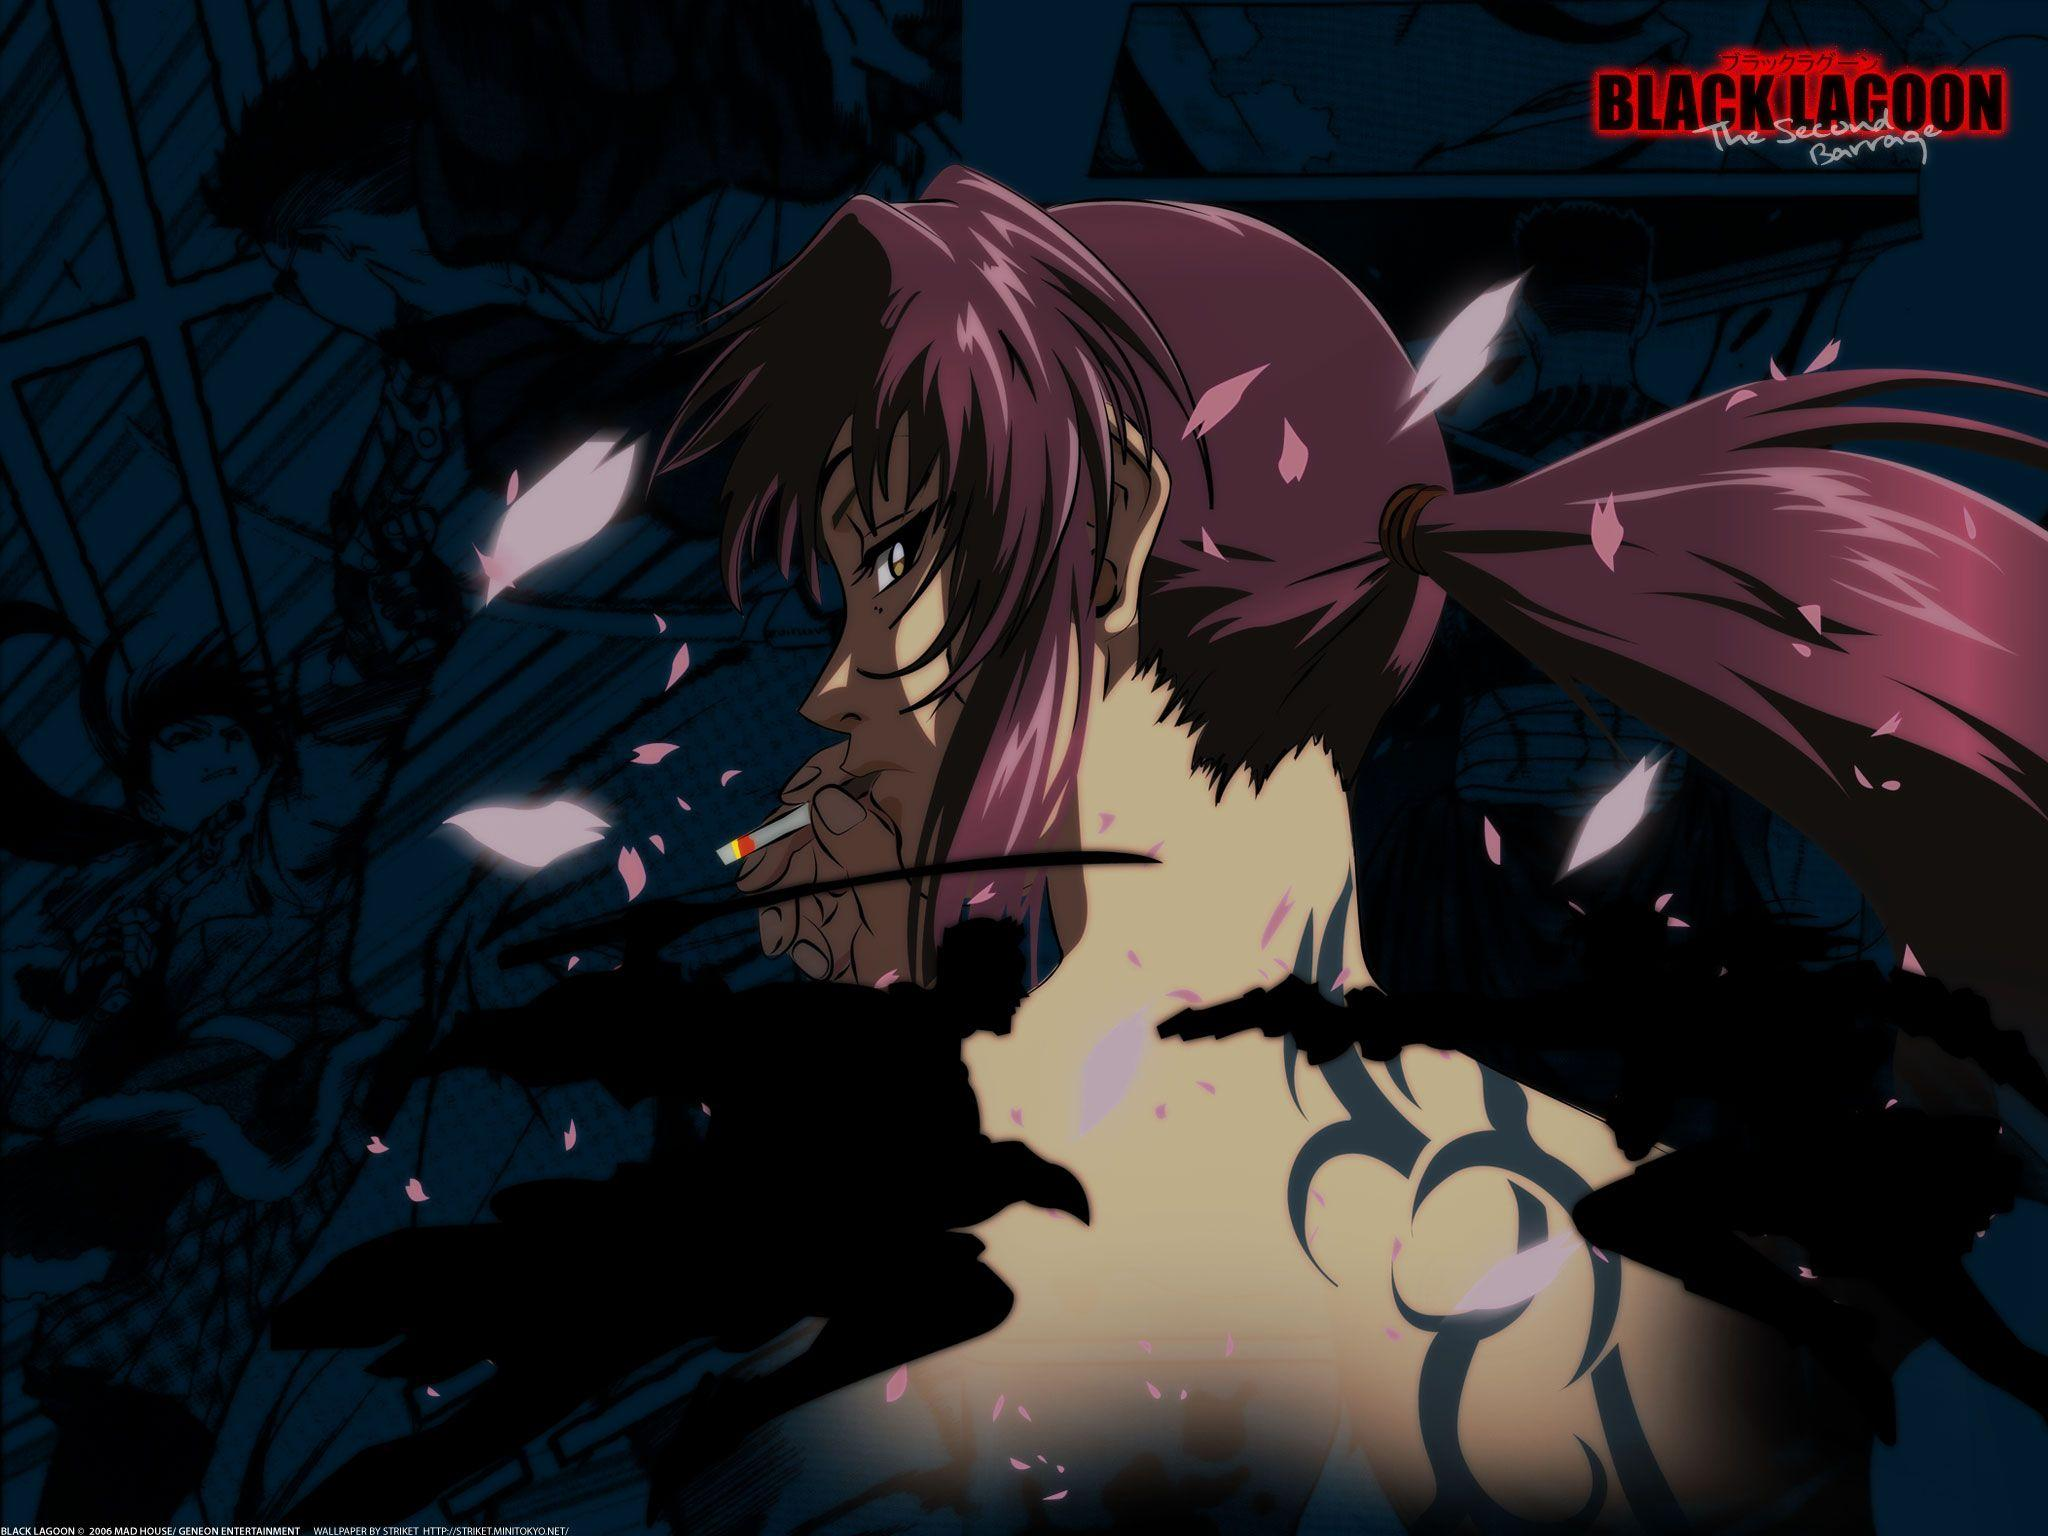 28+ Revy Black Lagoon Pictures, Revy Black Lagoon Wallpapers